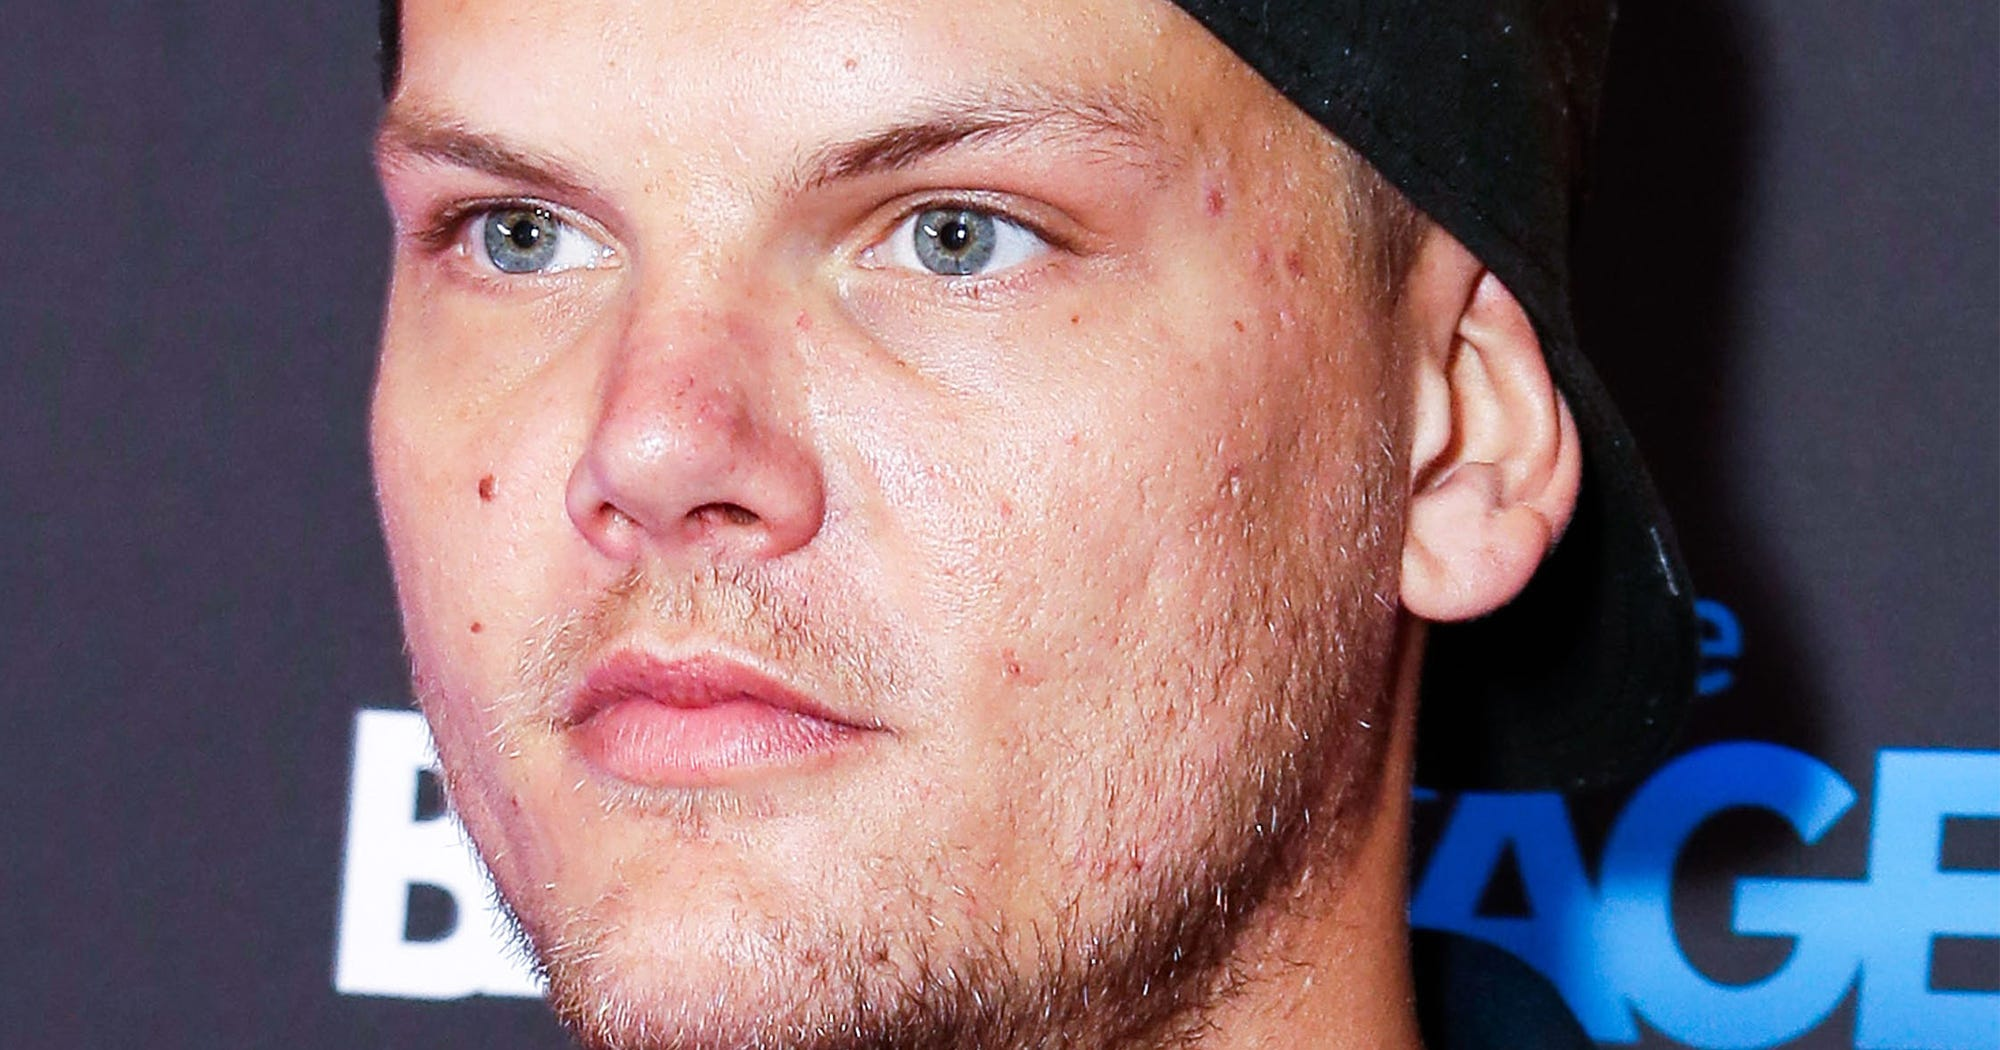 This Is How The Billboard Music Awards Remembered Avicii